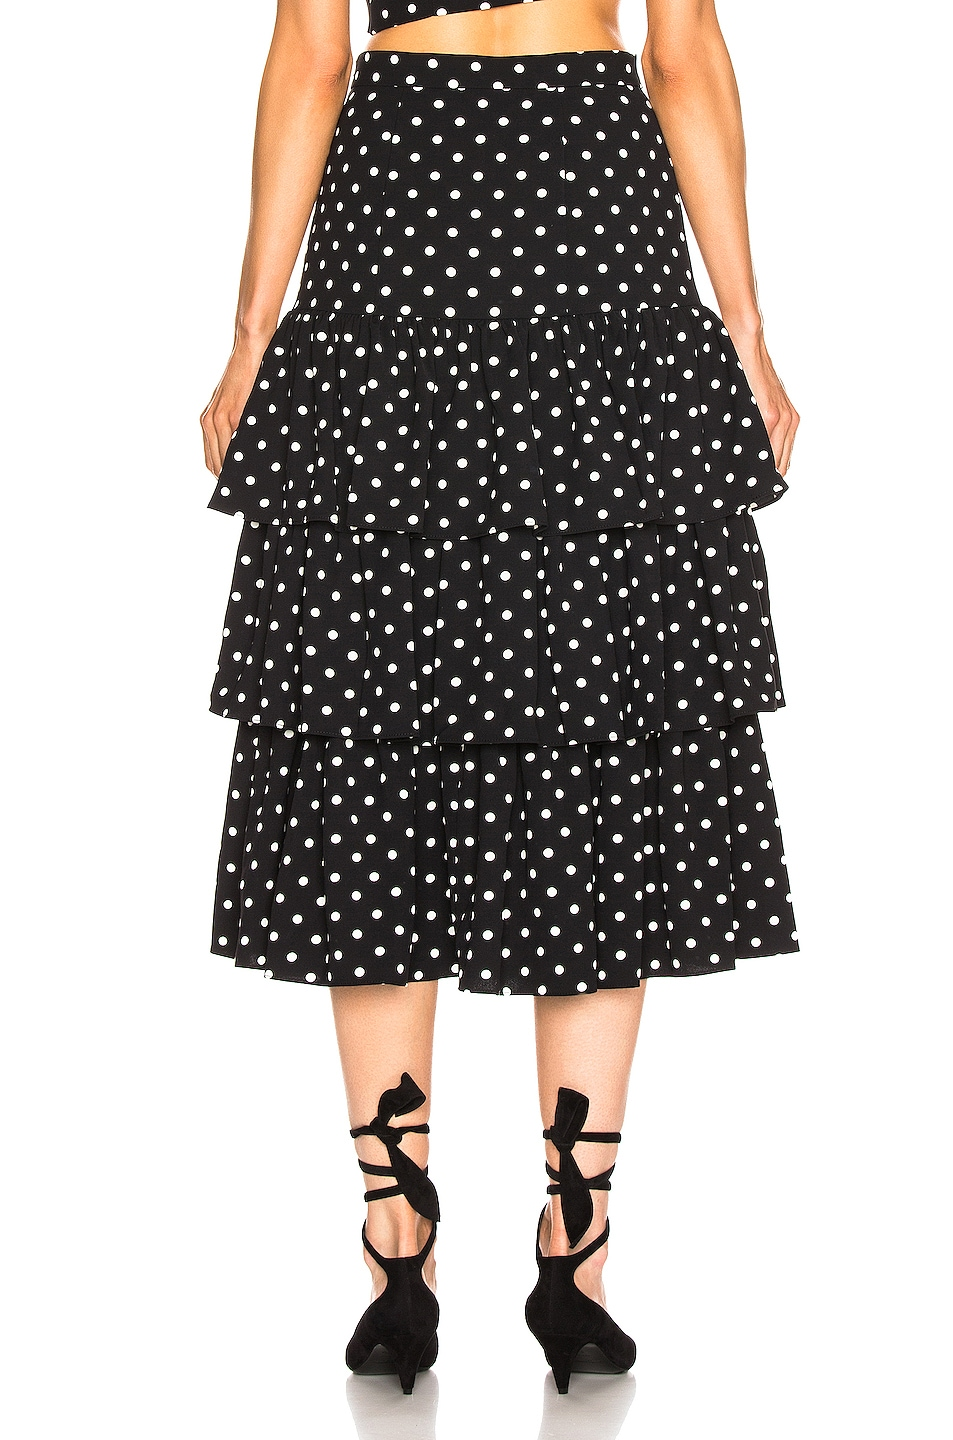 Image 4 of Cinq a Sept Rowena Skirt in Black & White